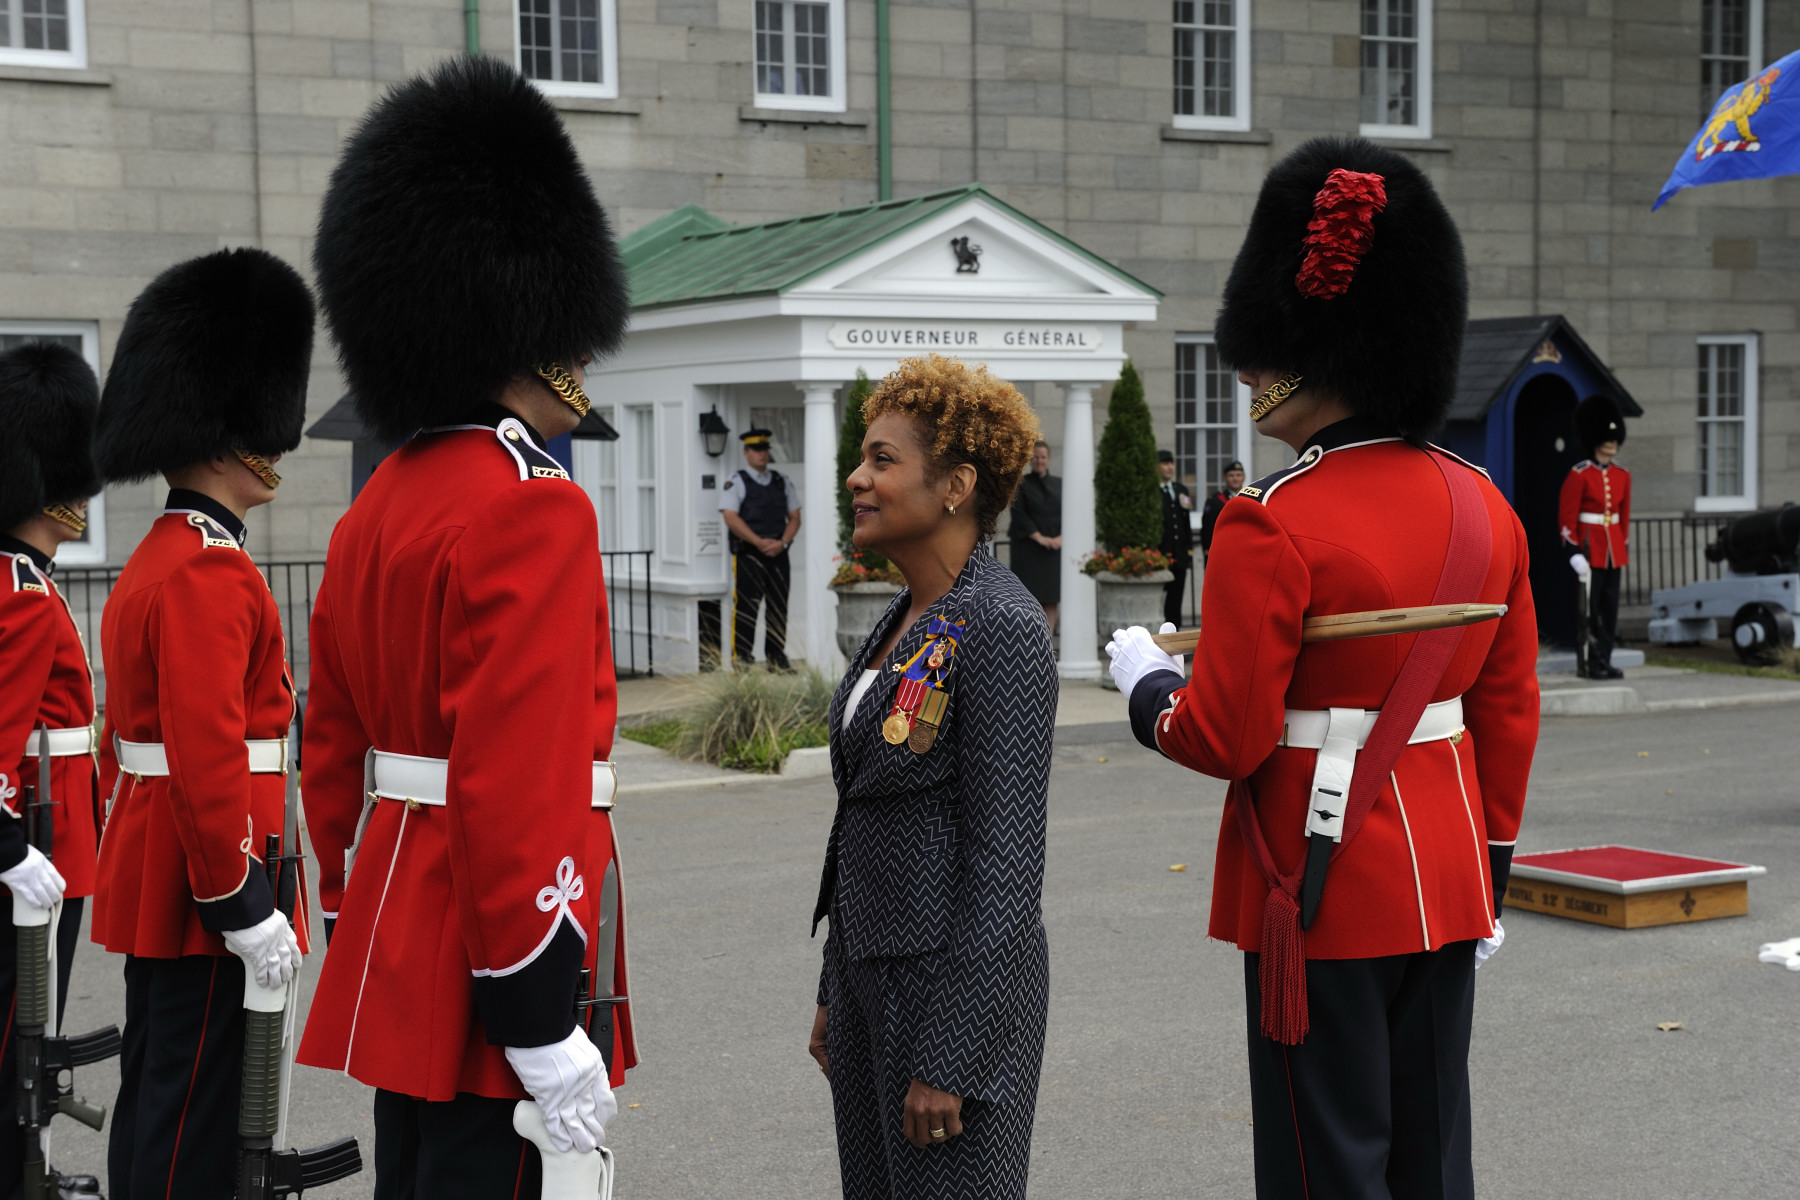 Their Excellencies the Right Honourable Michaëlle Jean, Governor General of Canada, and Mr. Jean-Daniel Lafond, are visiting the Residence of the Governor General at the Citadelle of Québec on September 15 and 16, 2010.